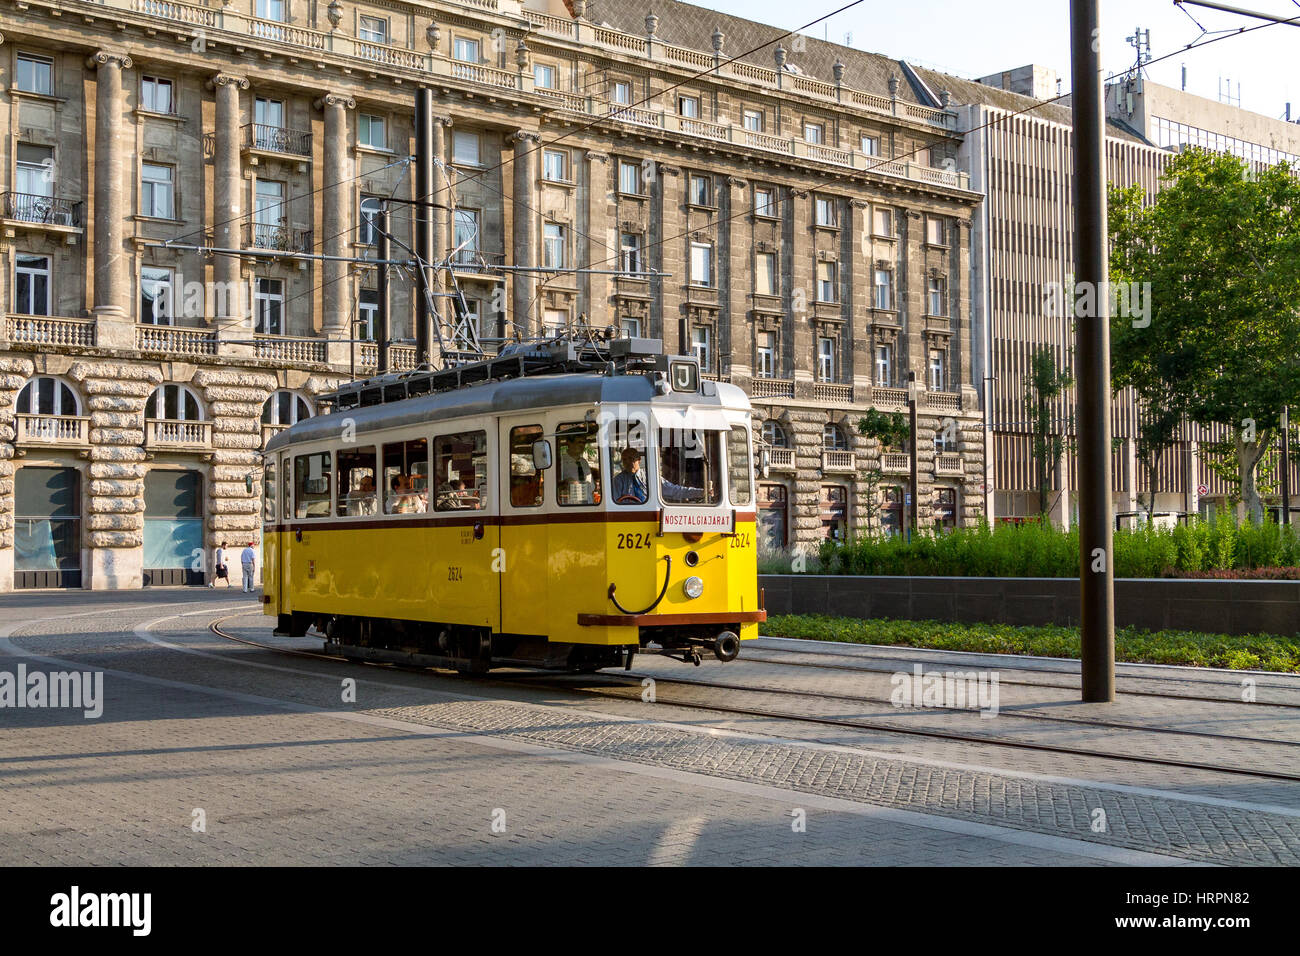 An old tram coming around a corner in Budapest, Hungary Stock Photo